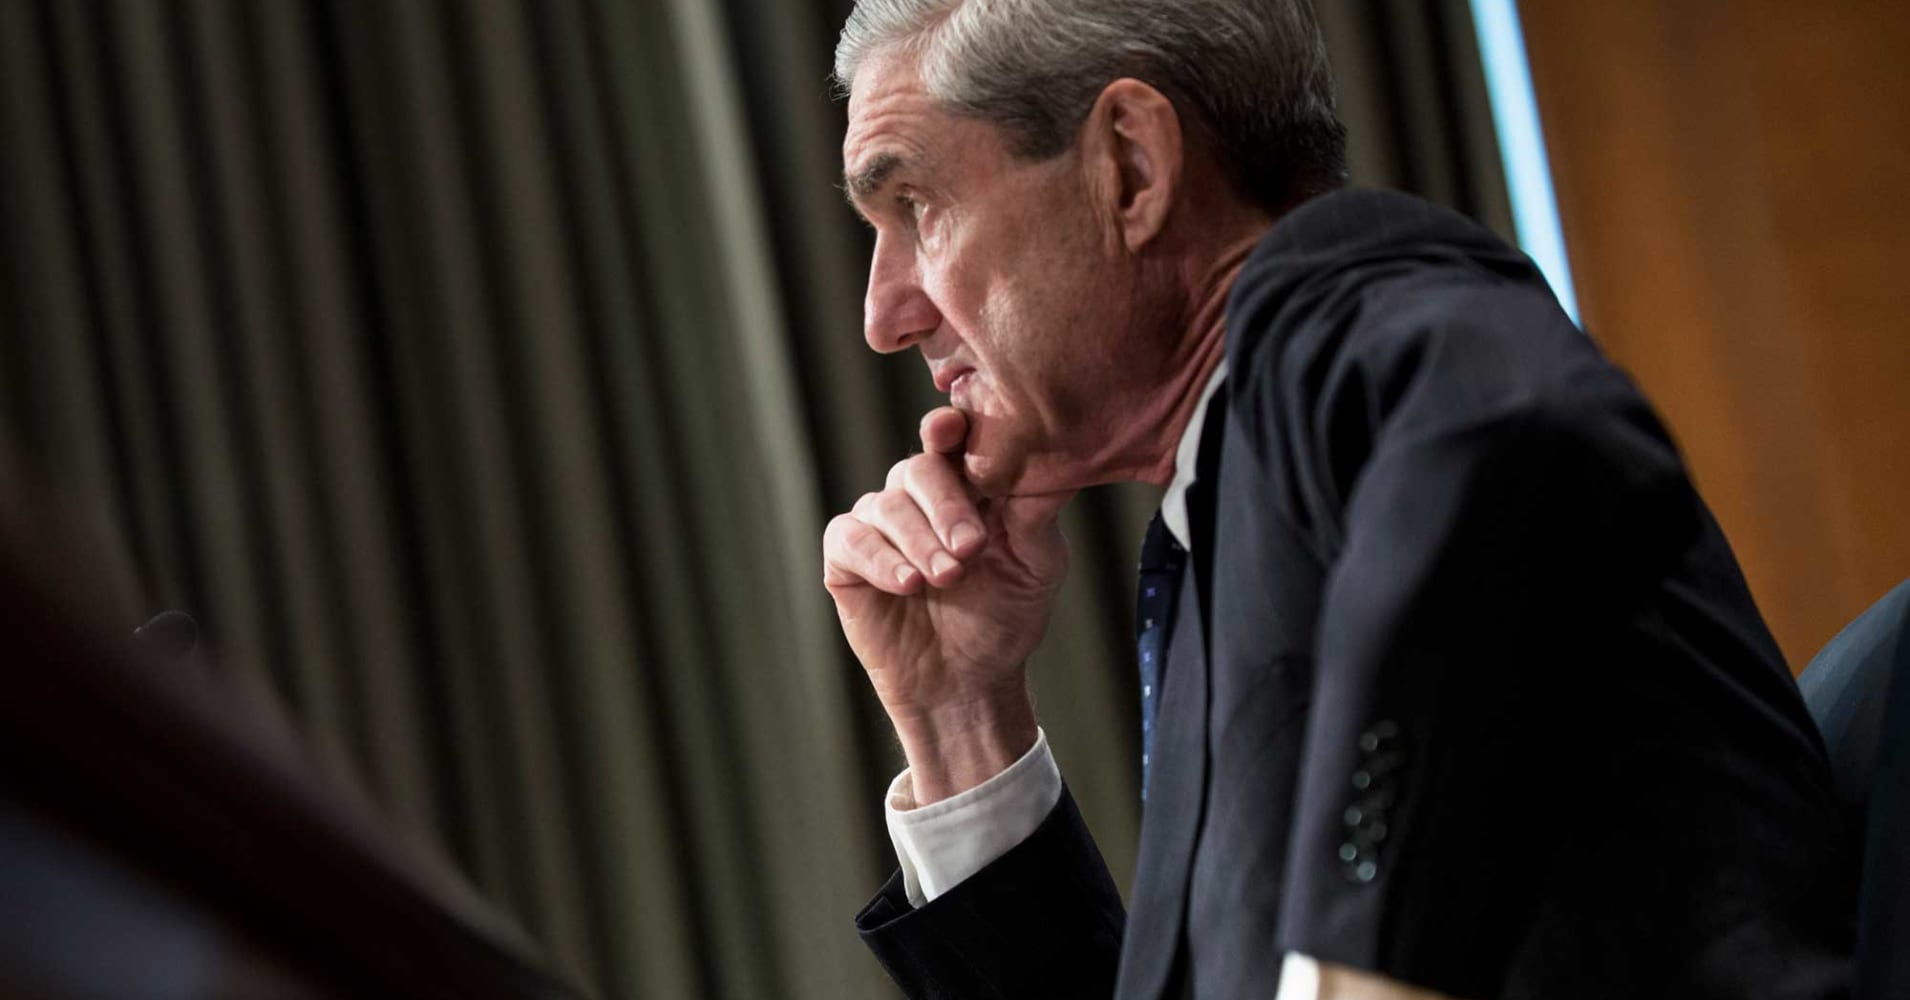 Special counsel Robert Mueller recently investigated the NFL